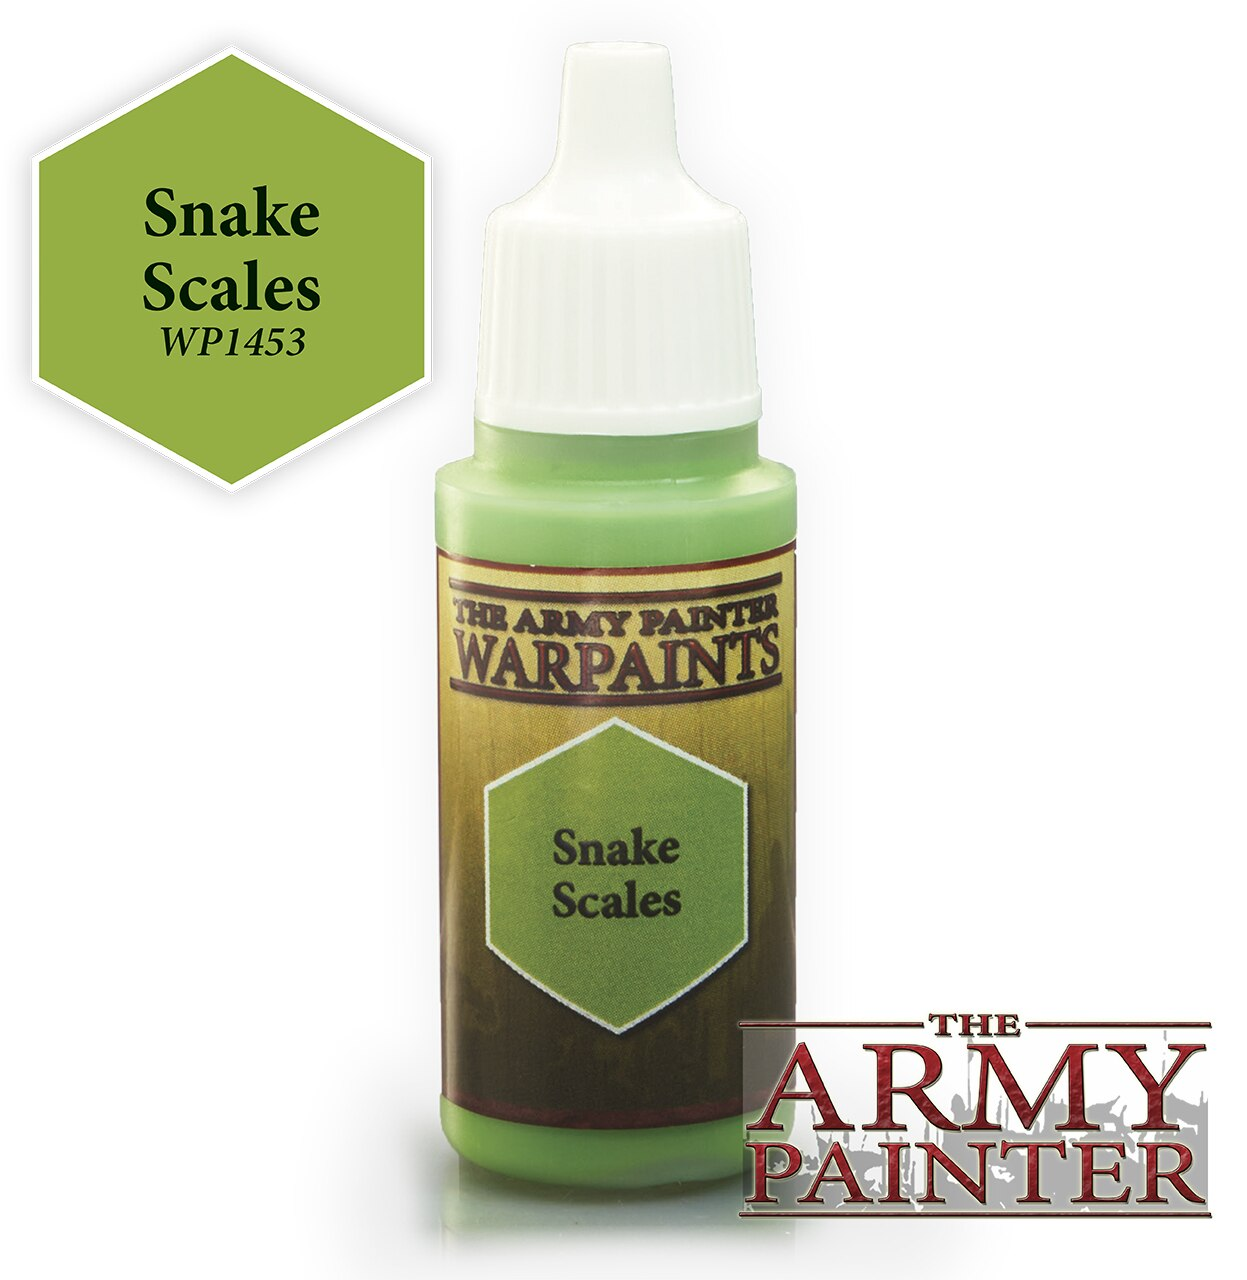 Army Painter Warpaint - Snake Scales